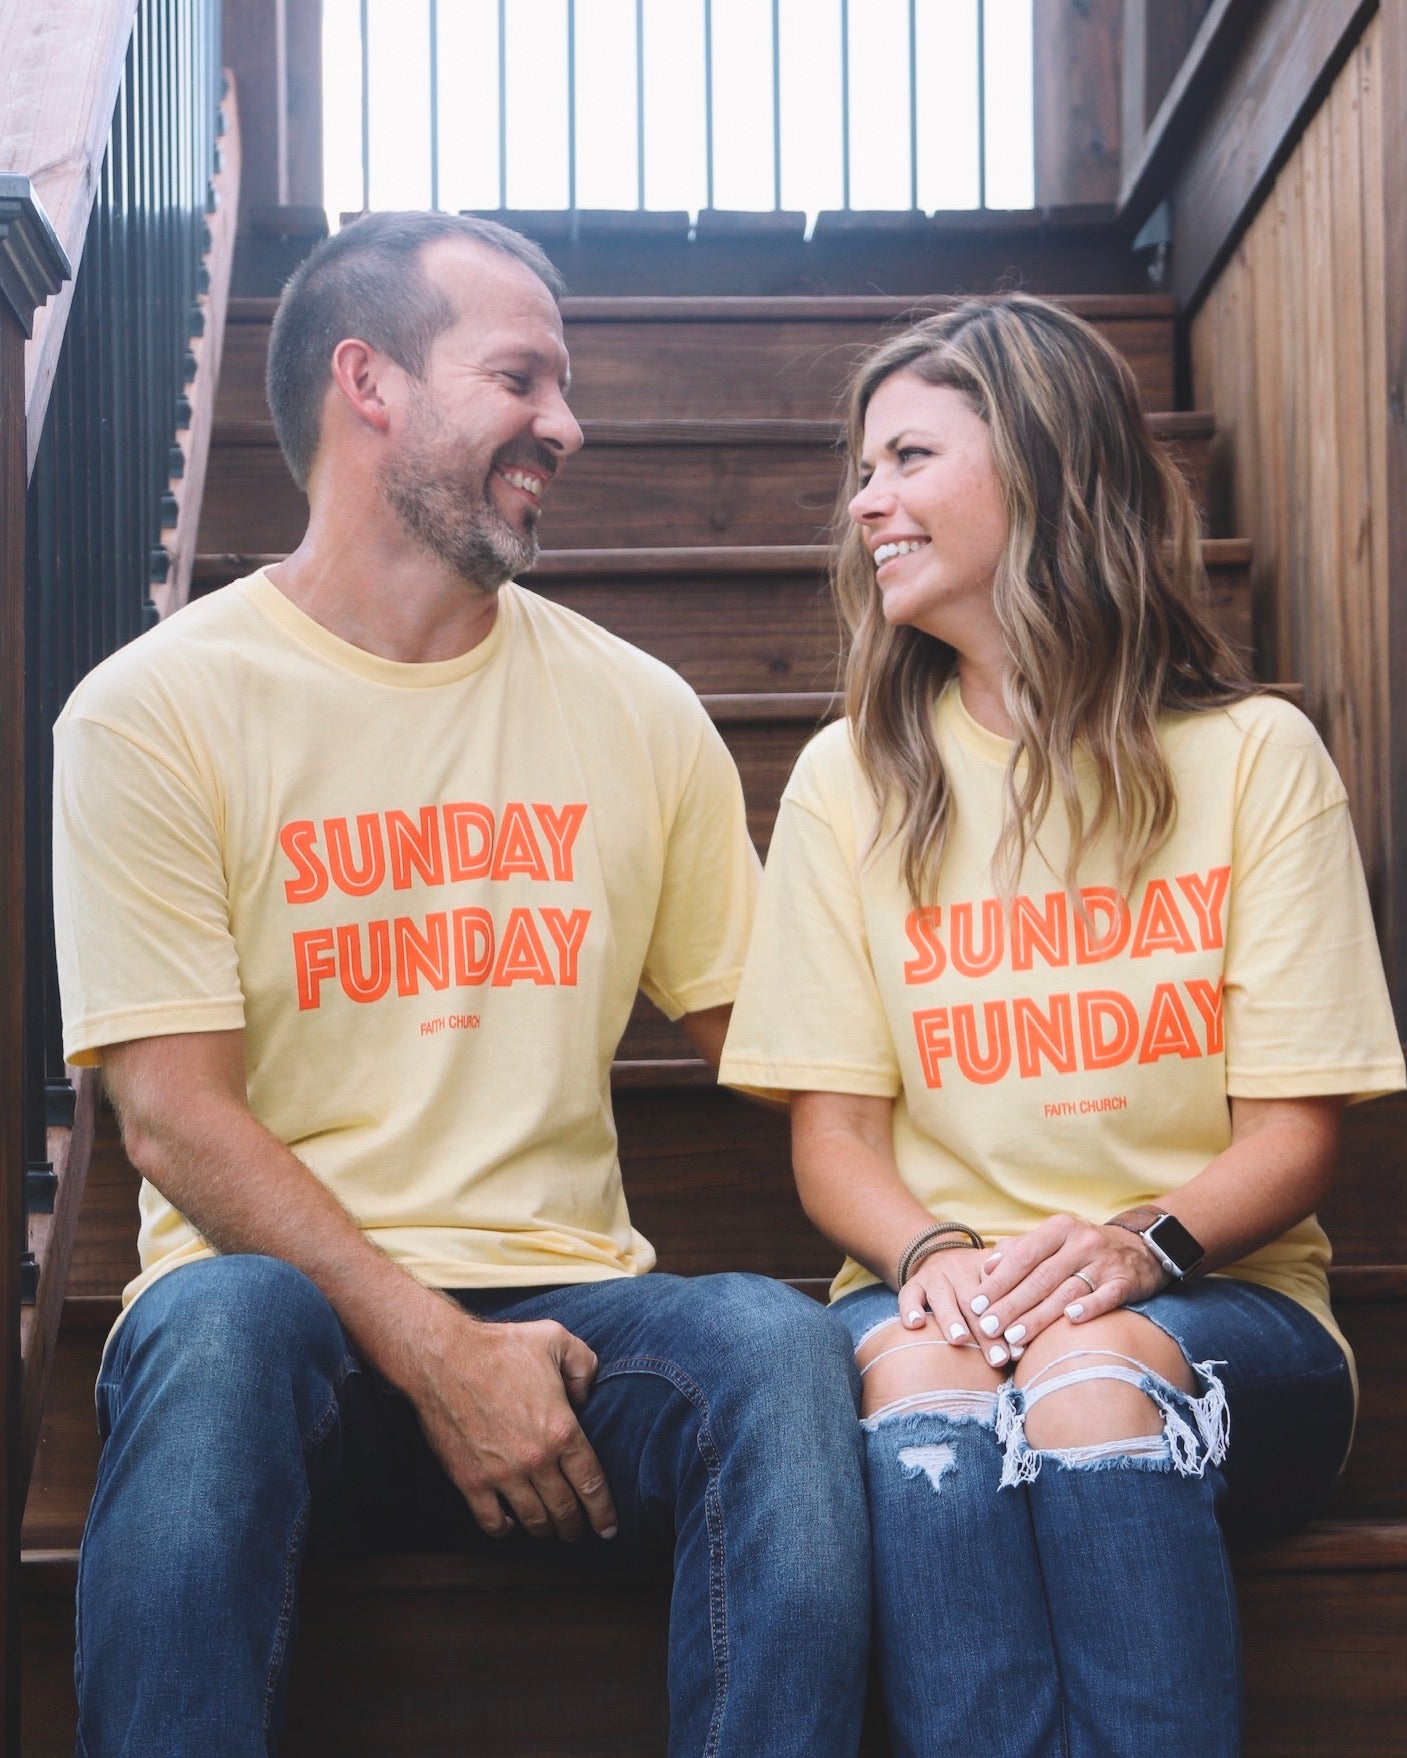 'Sunday Funday' tee